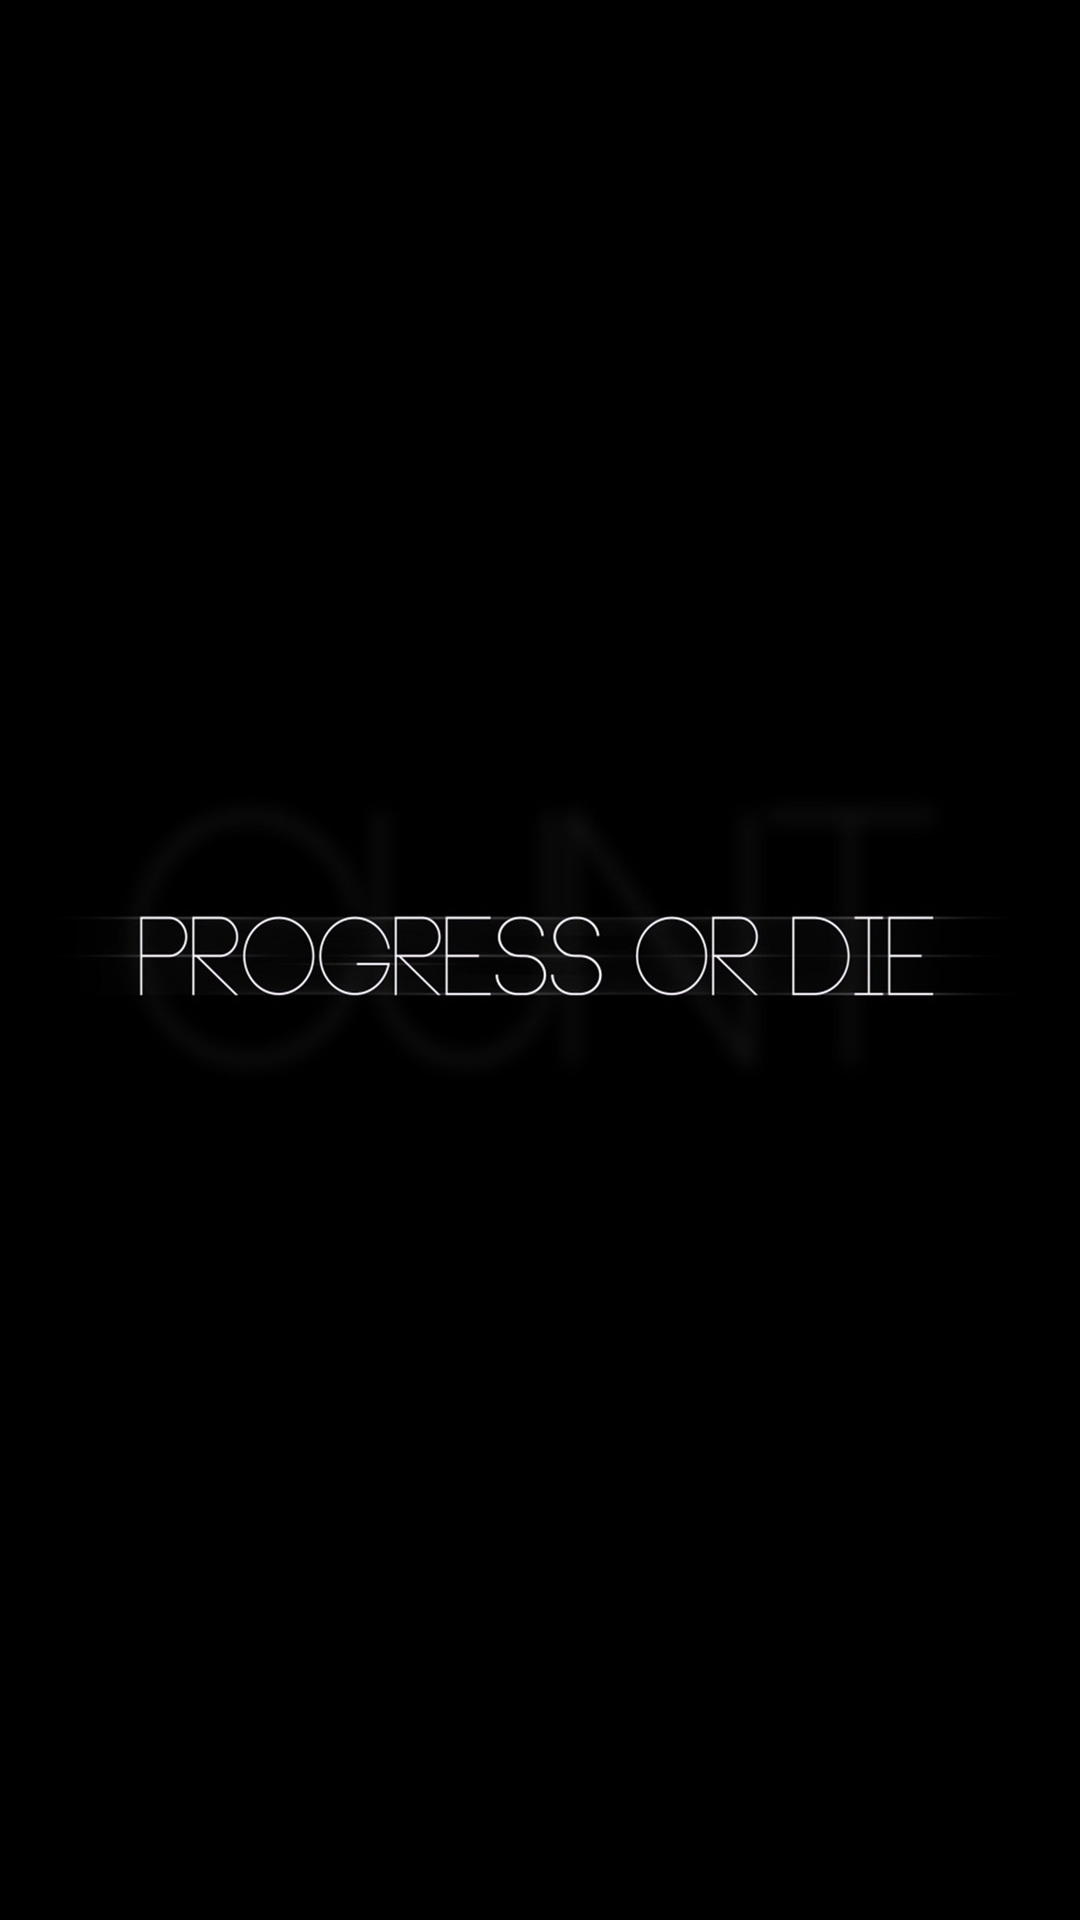 progress-or-die-typography-ro.jpg